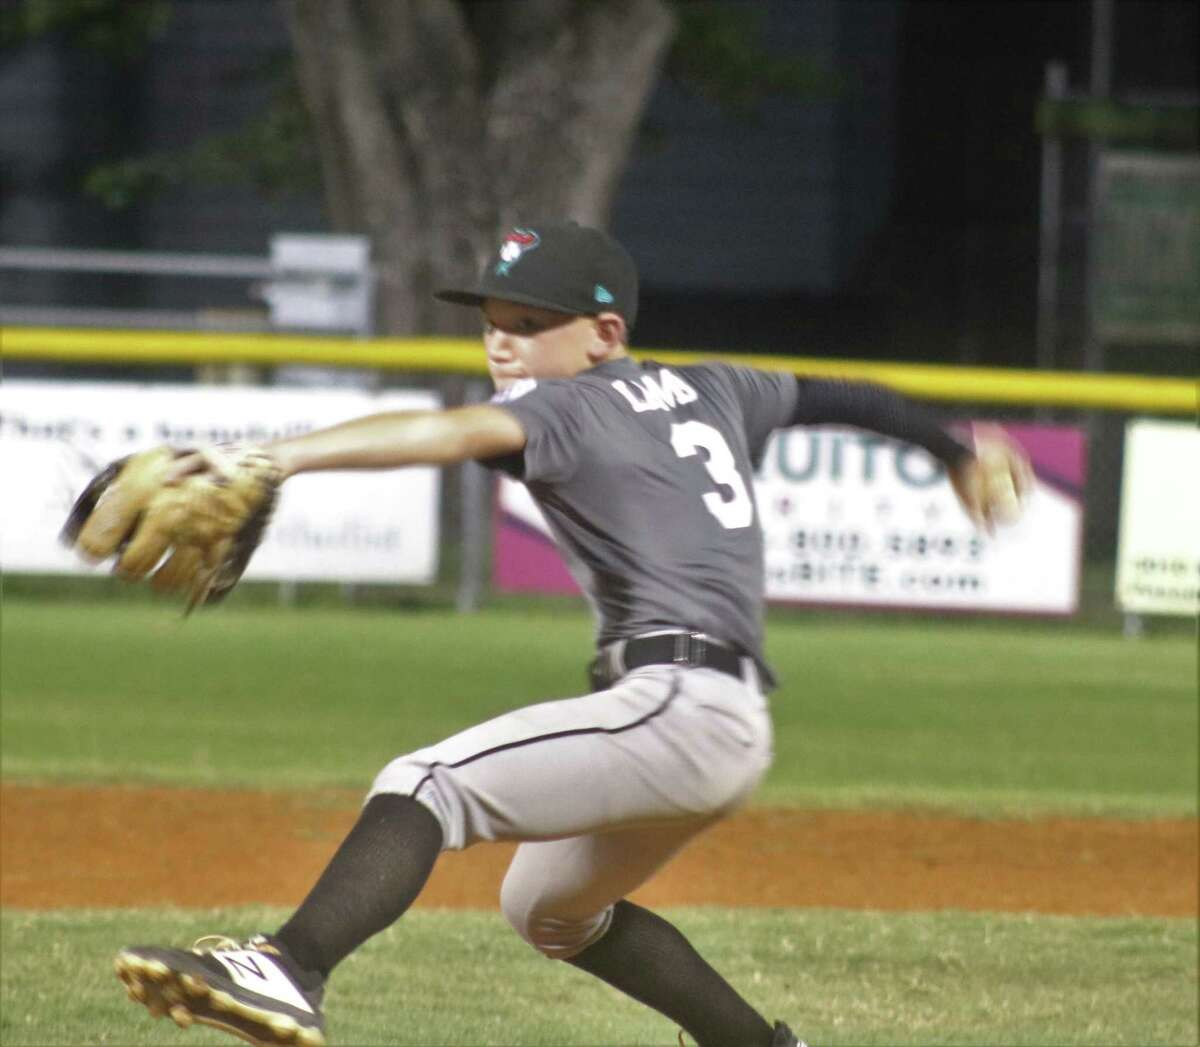 Mason Lamb works on another batter en route to his five innings of pitching no-hit ball at Rudy Trabanino Field Monday night.